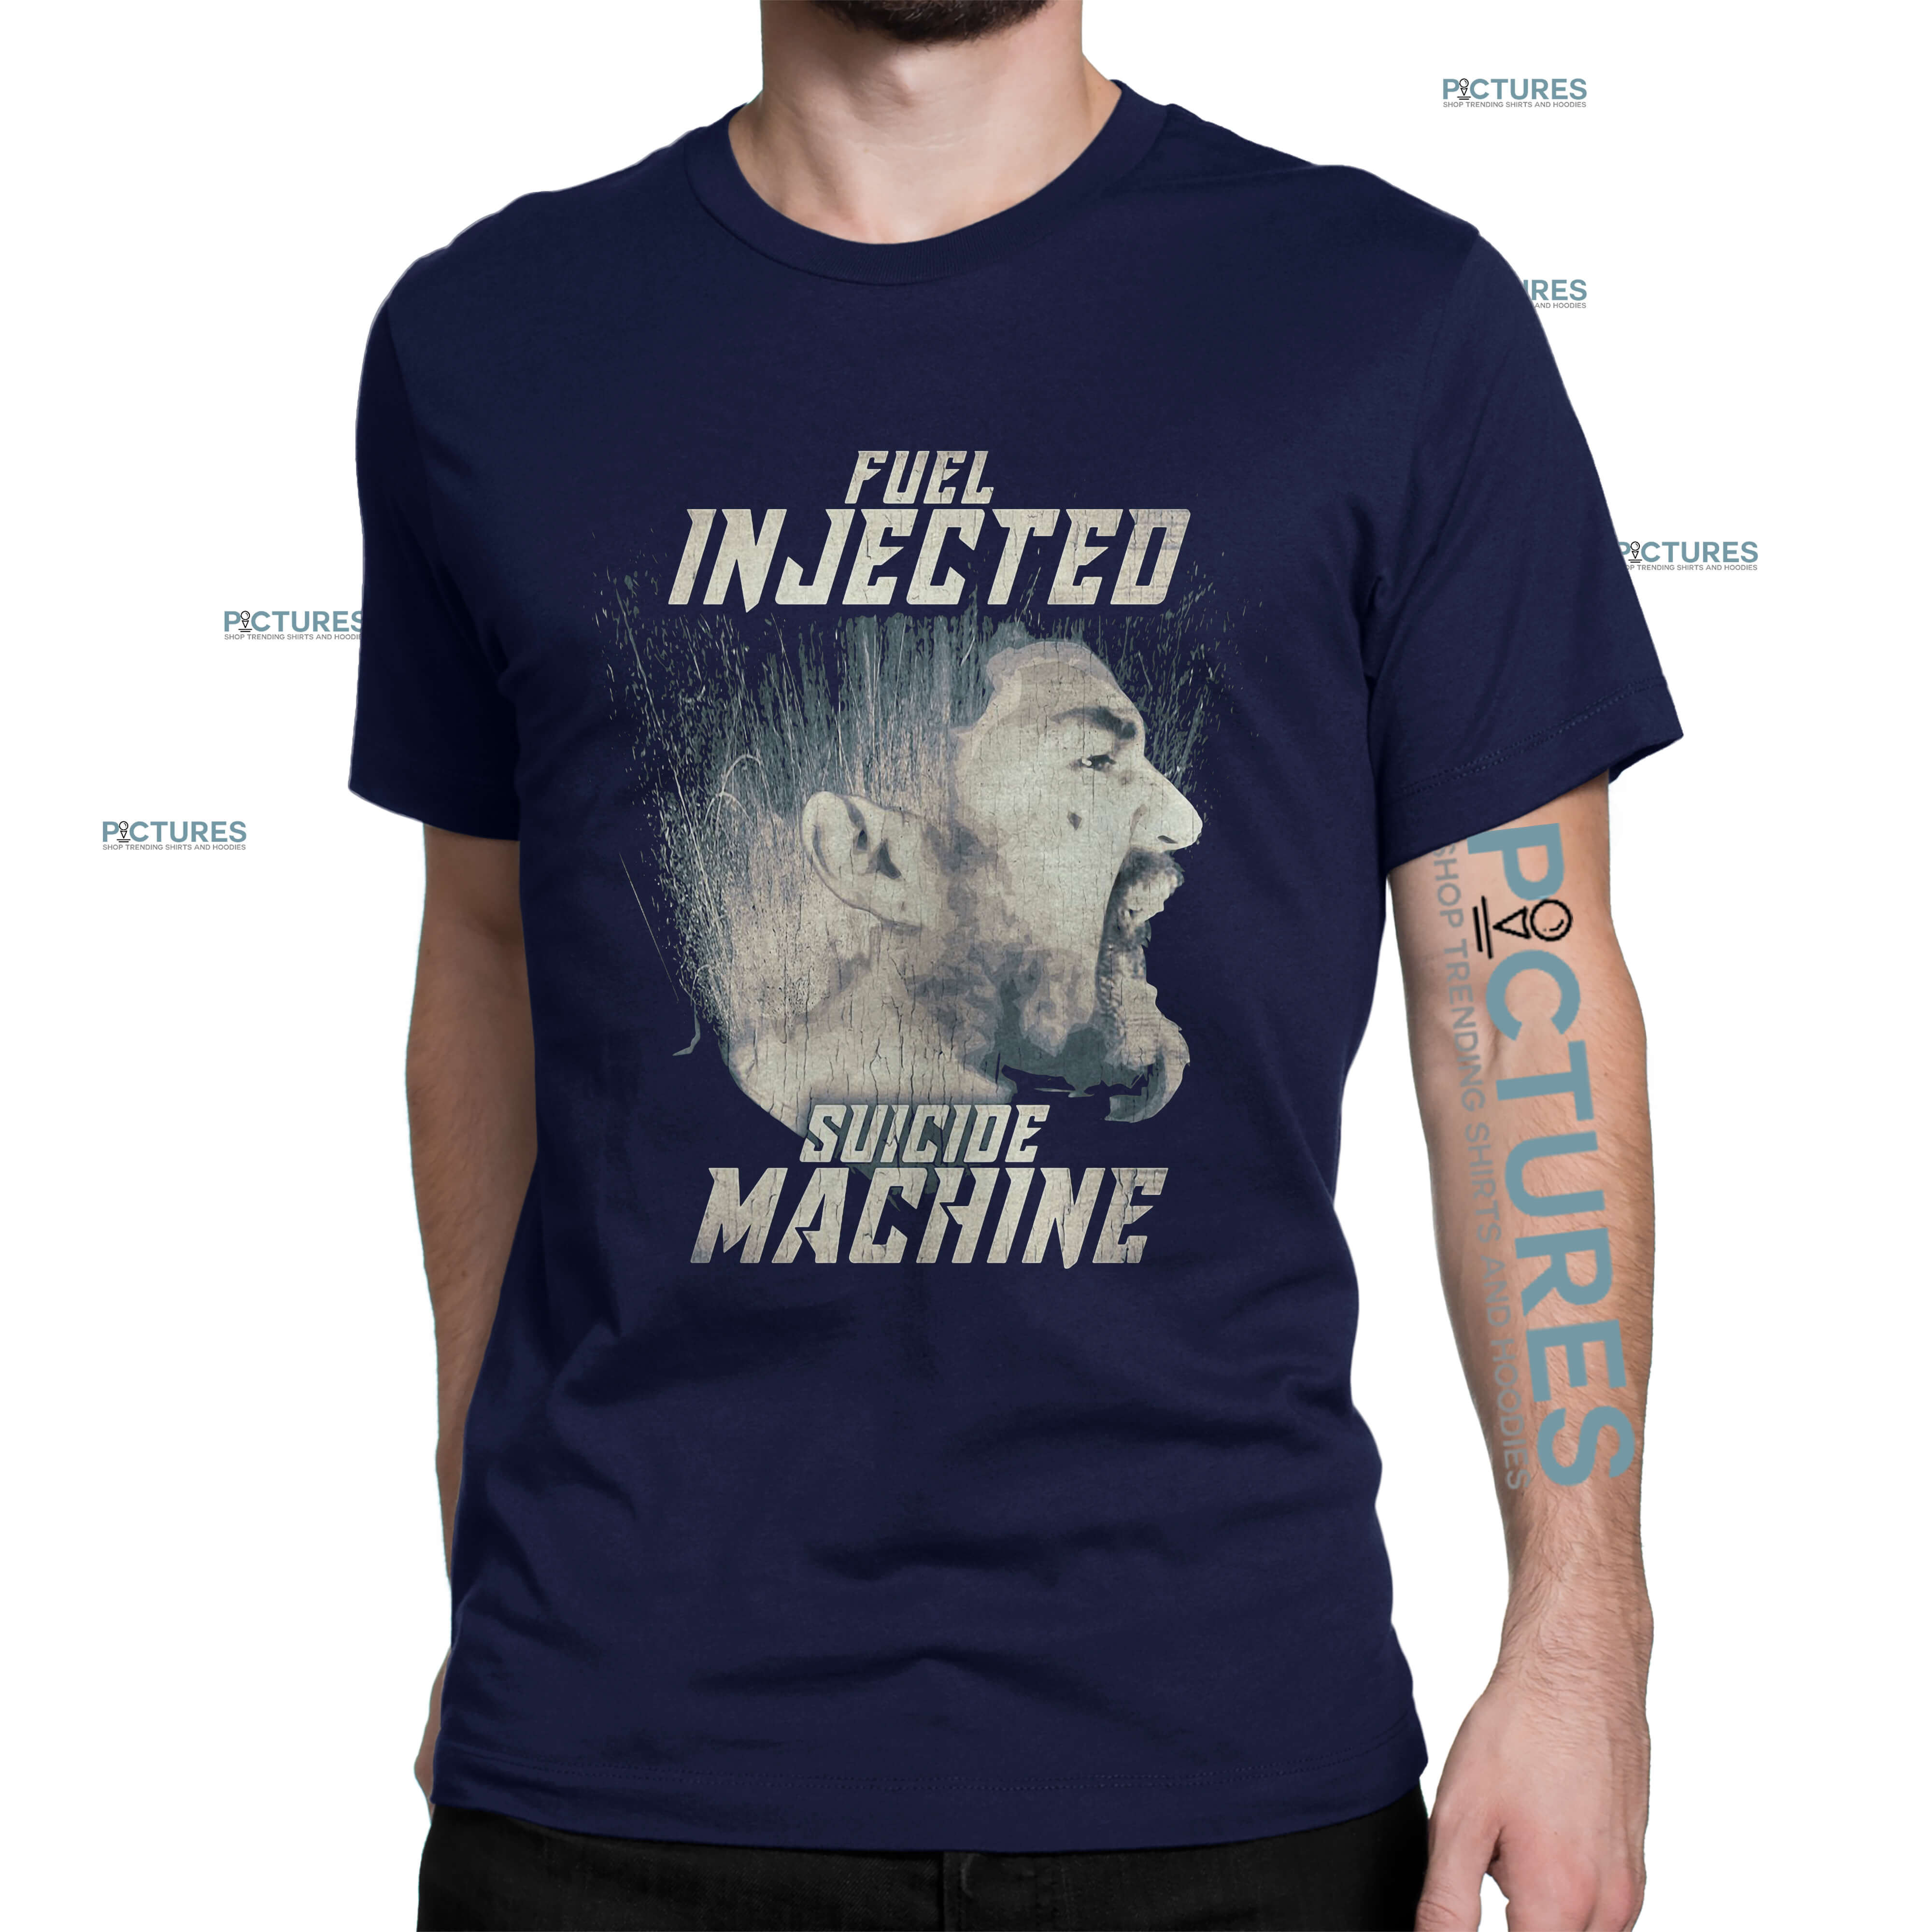 Official Fuel injected suicide machine Night Rider shirt